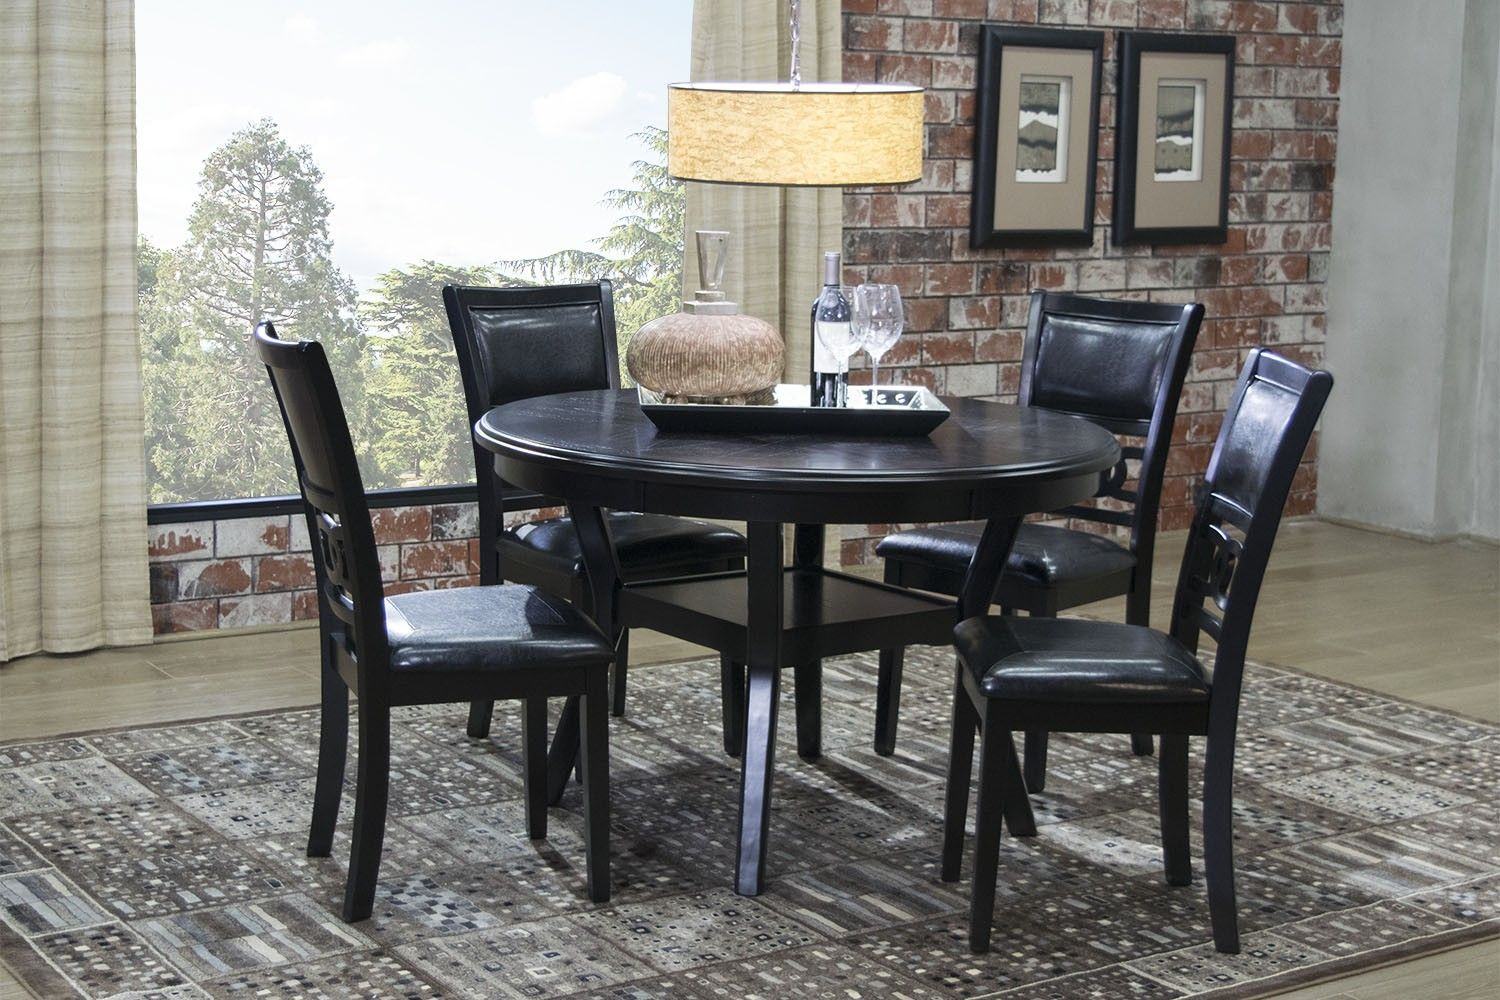 Gia Dining Room   Dining Room | Mor Furniture For Less